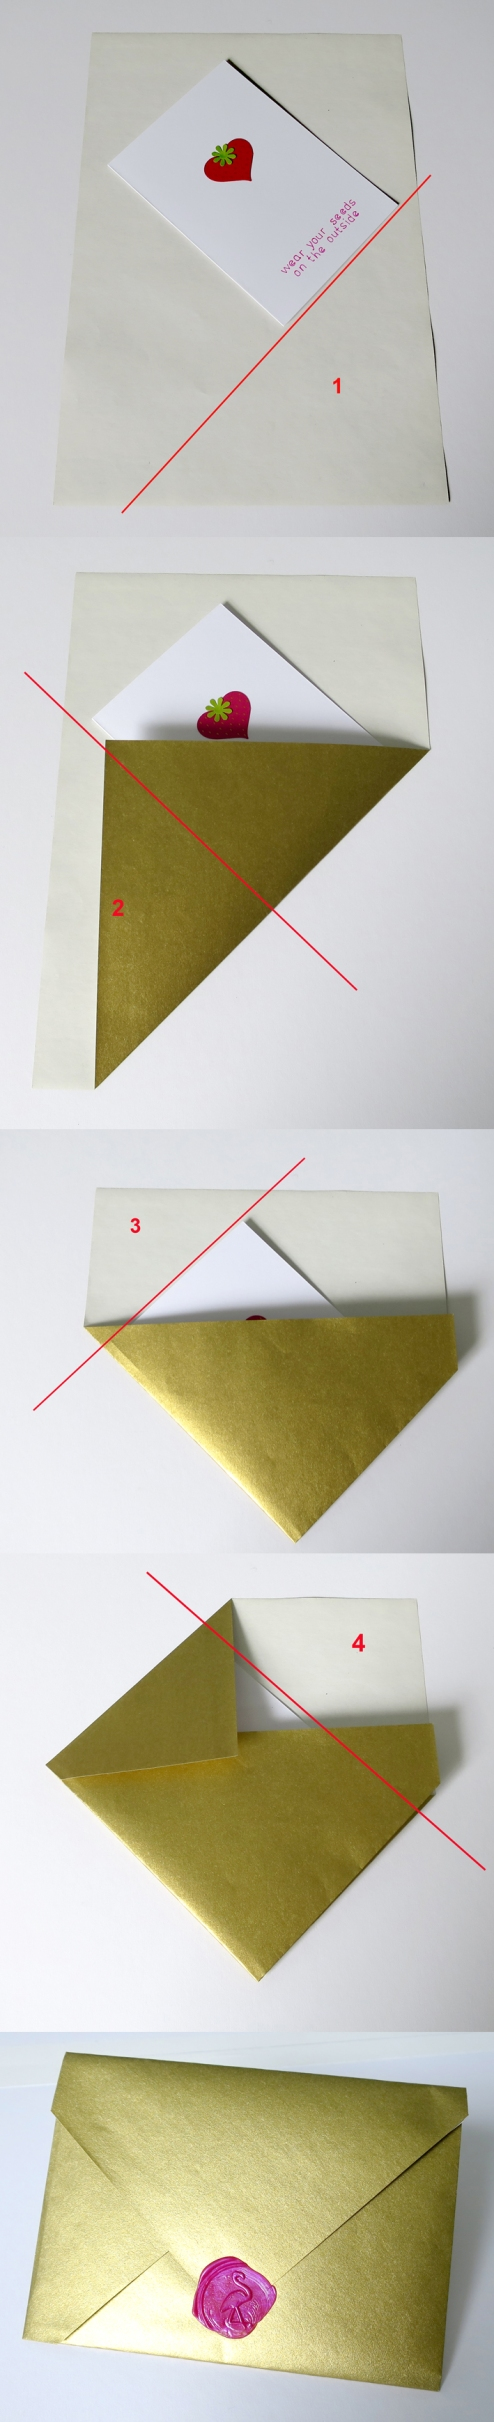 diy envelope from A4 paper